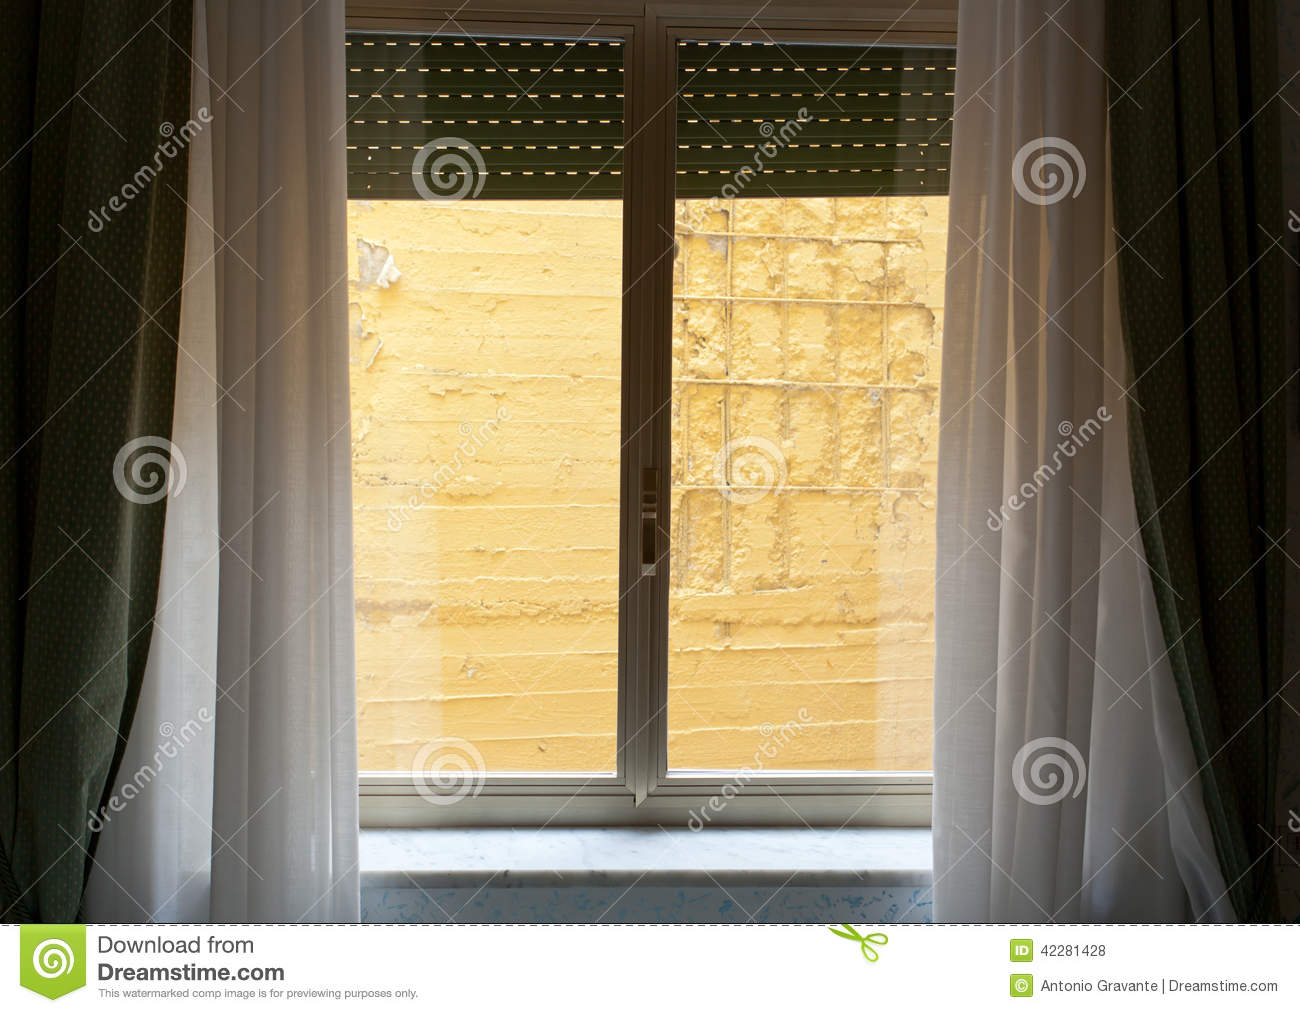 Hotel Room With Wall View Stock Photo Image Of Window